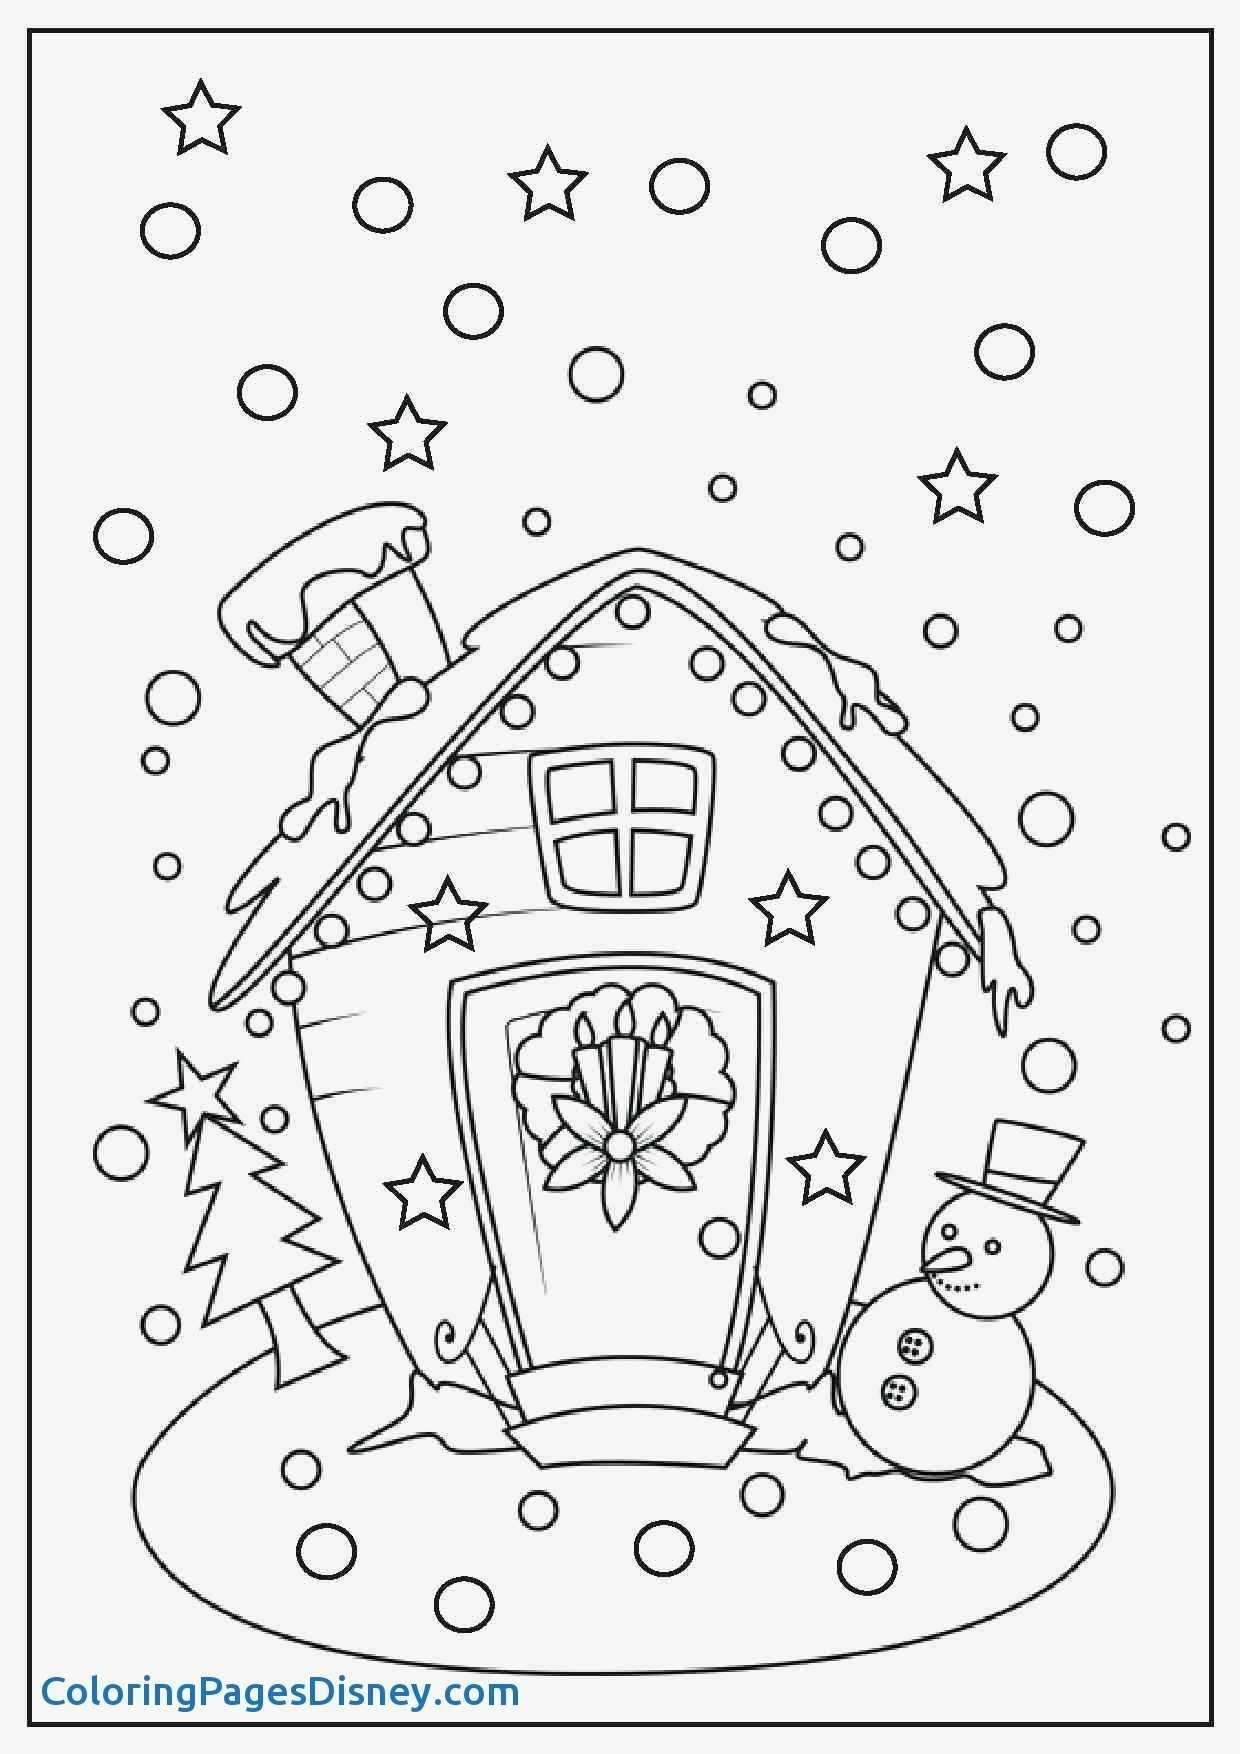 Christmas Coloring Hello Kitty With 25 Printable Pages